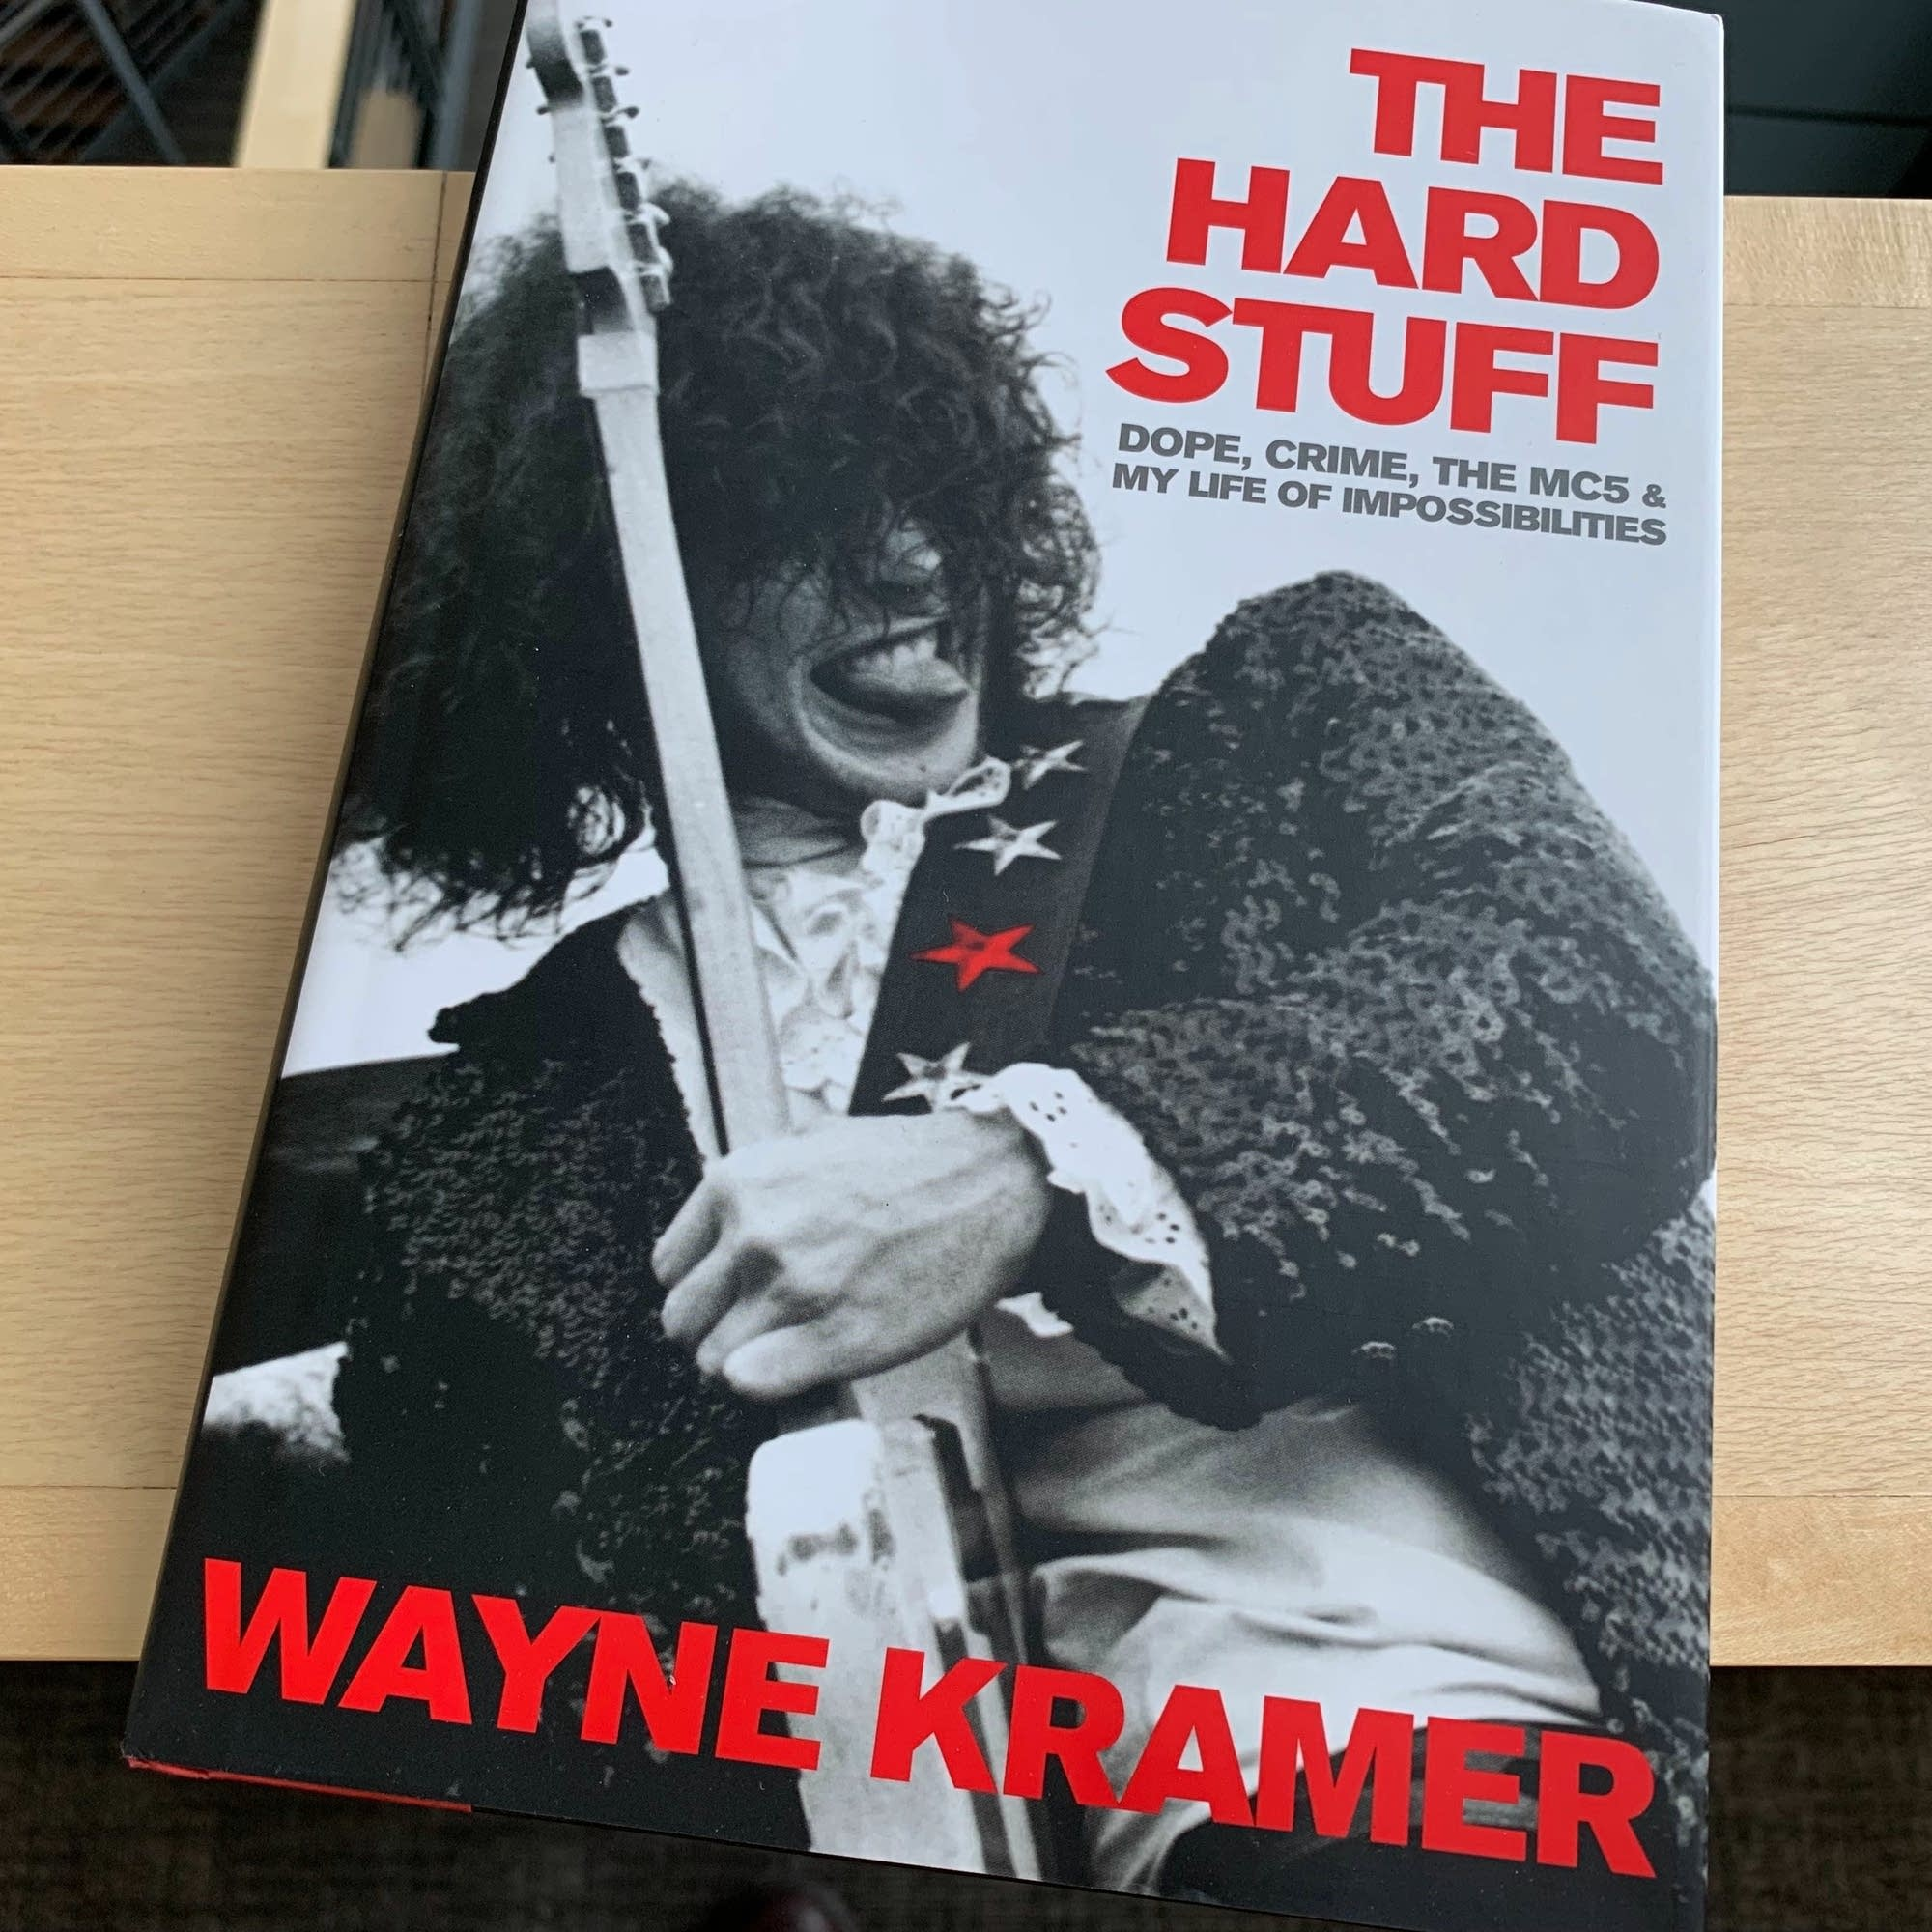 Wayne Kramer's memoir 'The Hard Stuff.'